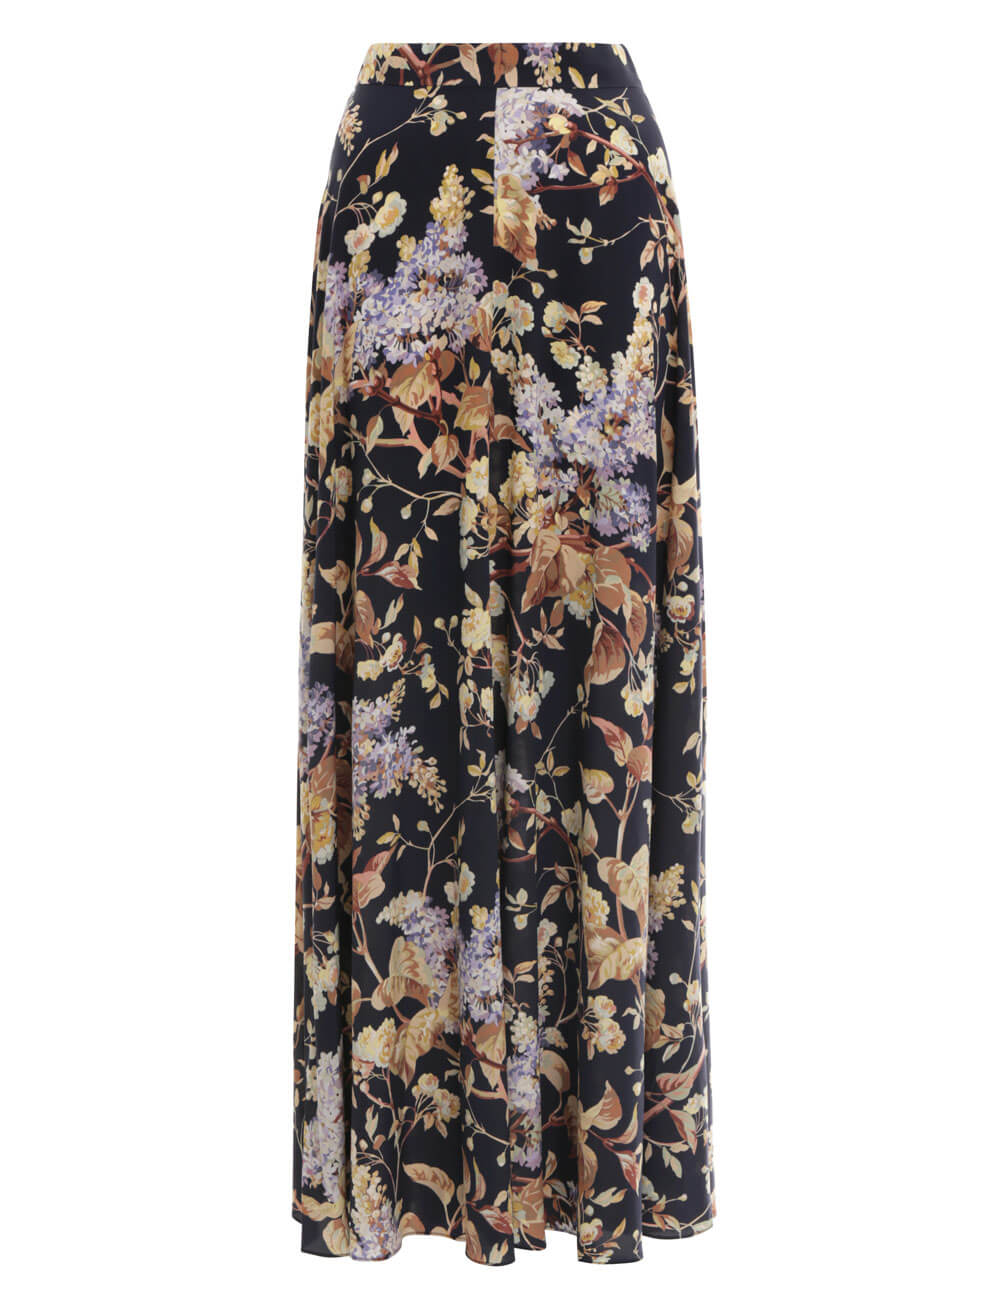 Sabotage Silk Basque Skirt